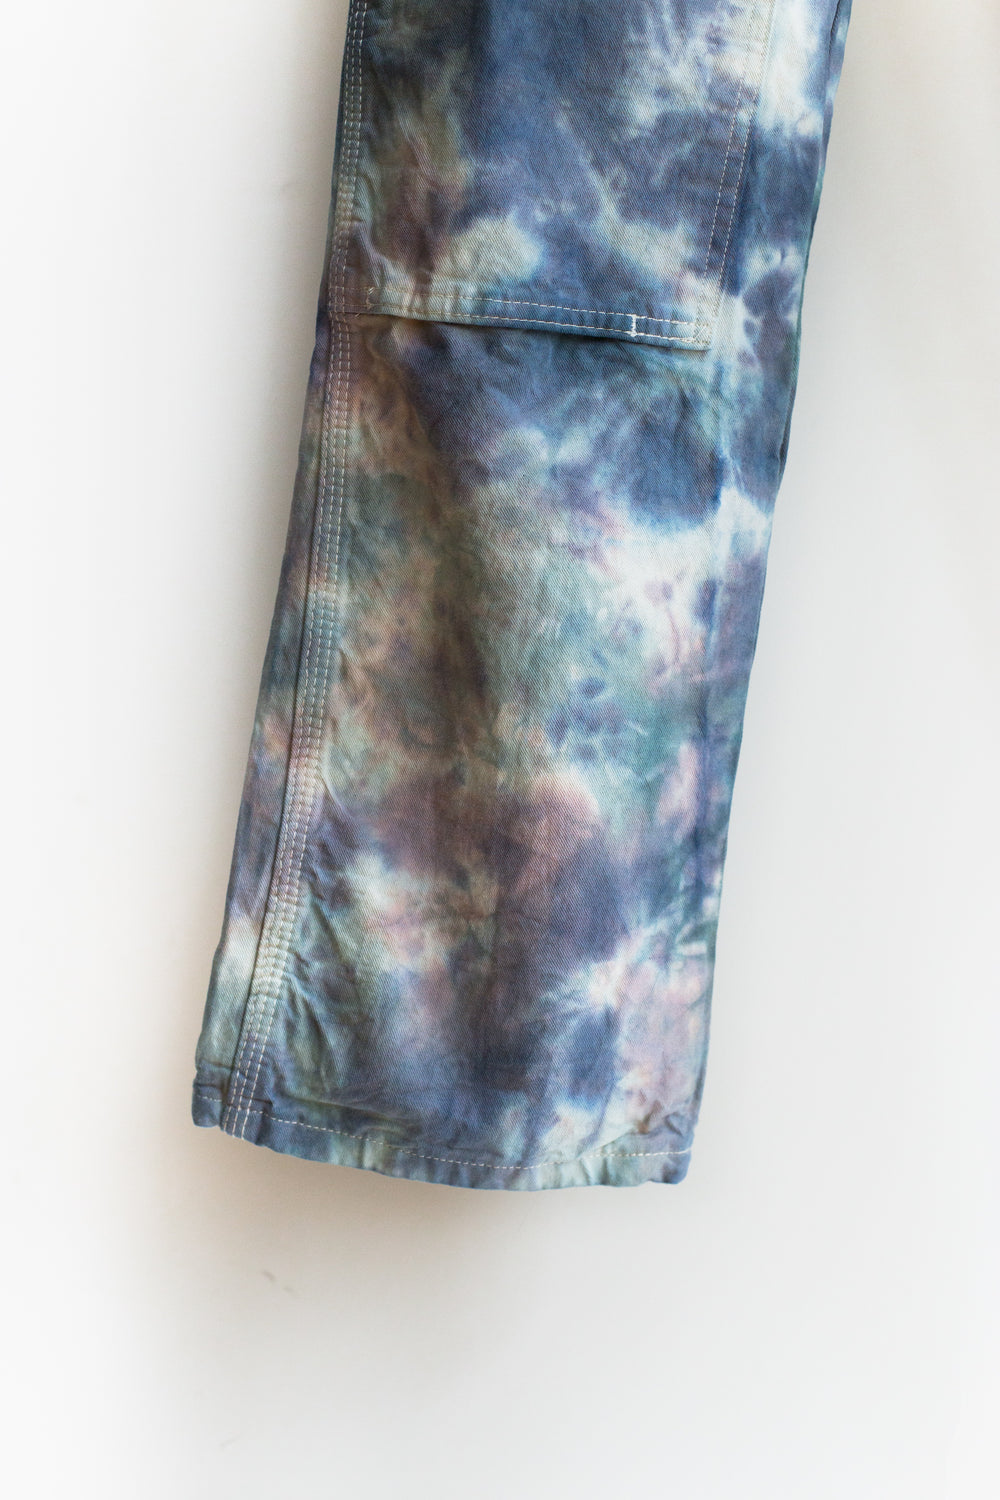 Eddie Yu Hand Dyed Dickies Painter Pants Ed. 1 (5)